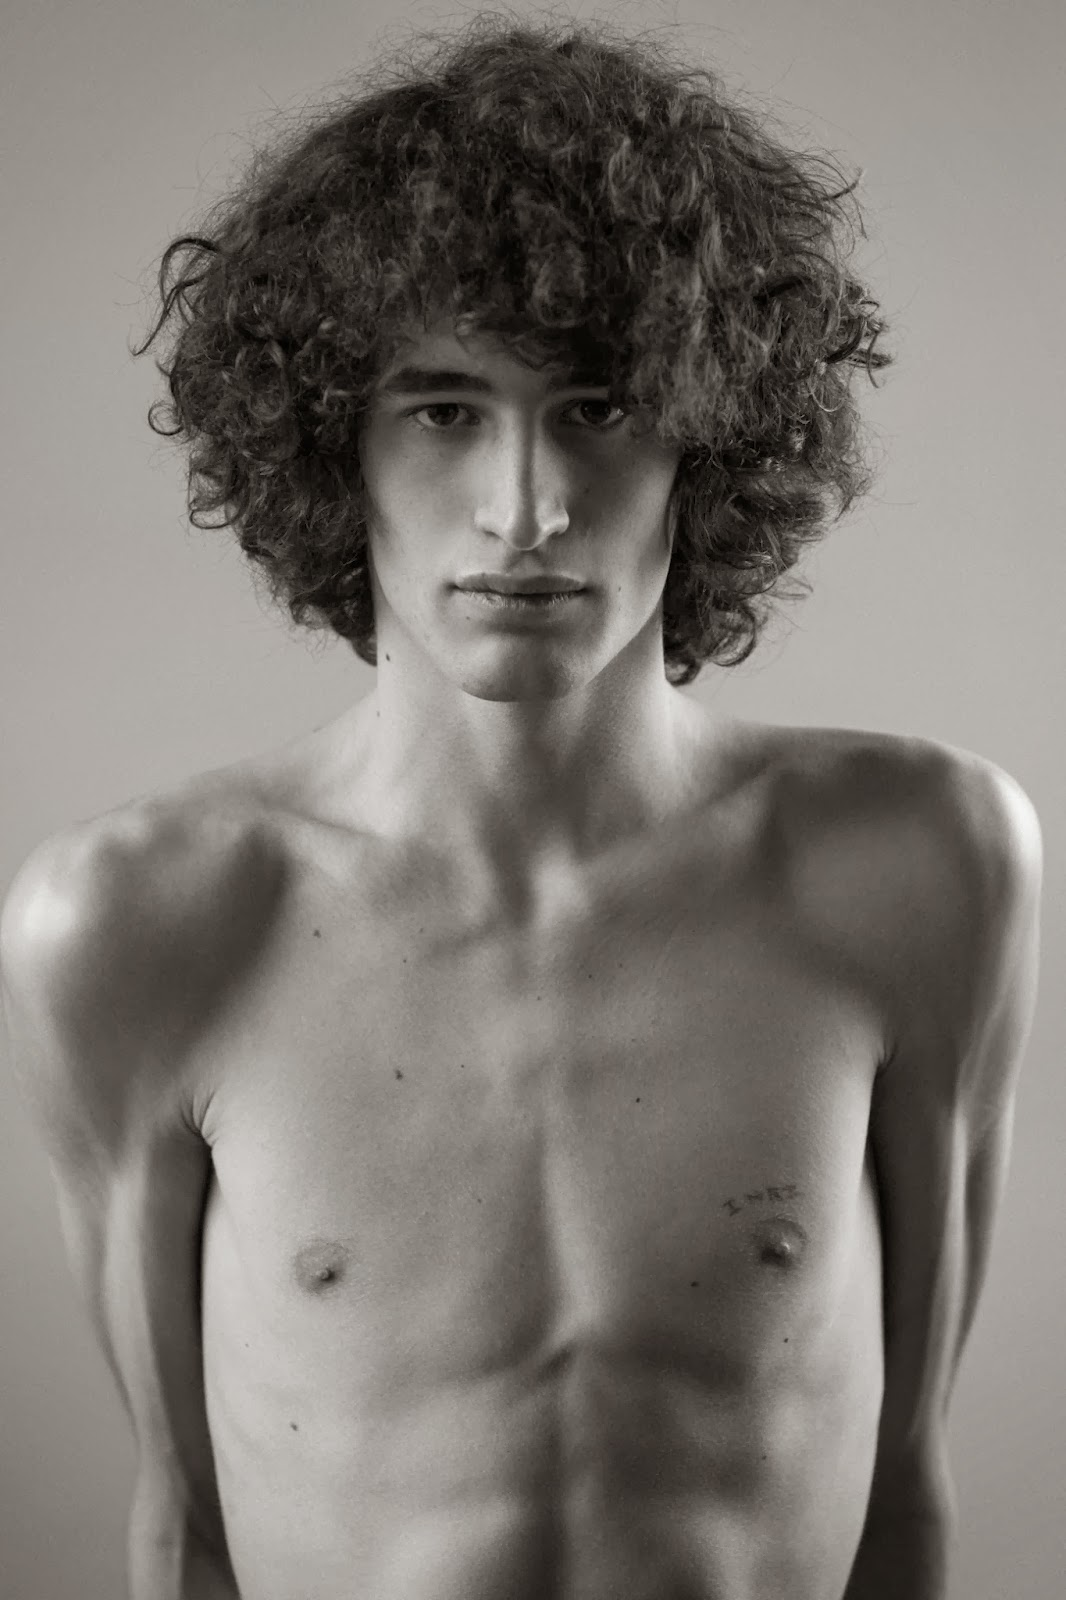 FLORIAN O. (Major Model Management) por Djinane Alsuwayeh 2 FLORIAN O. (Major Model Management) por Djinane Alsuwayeh